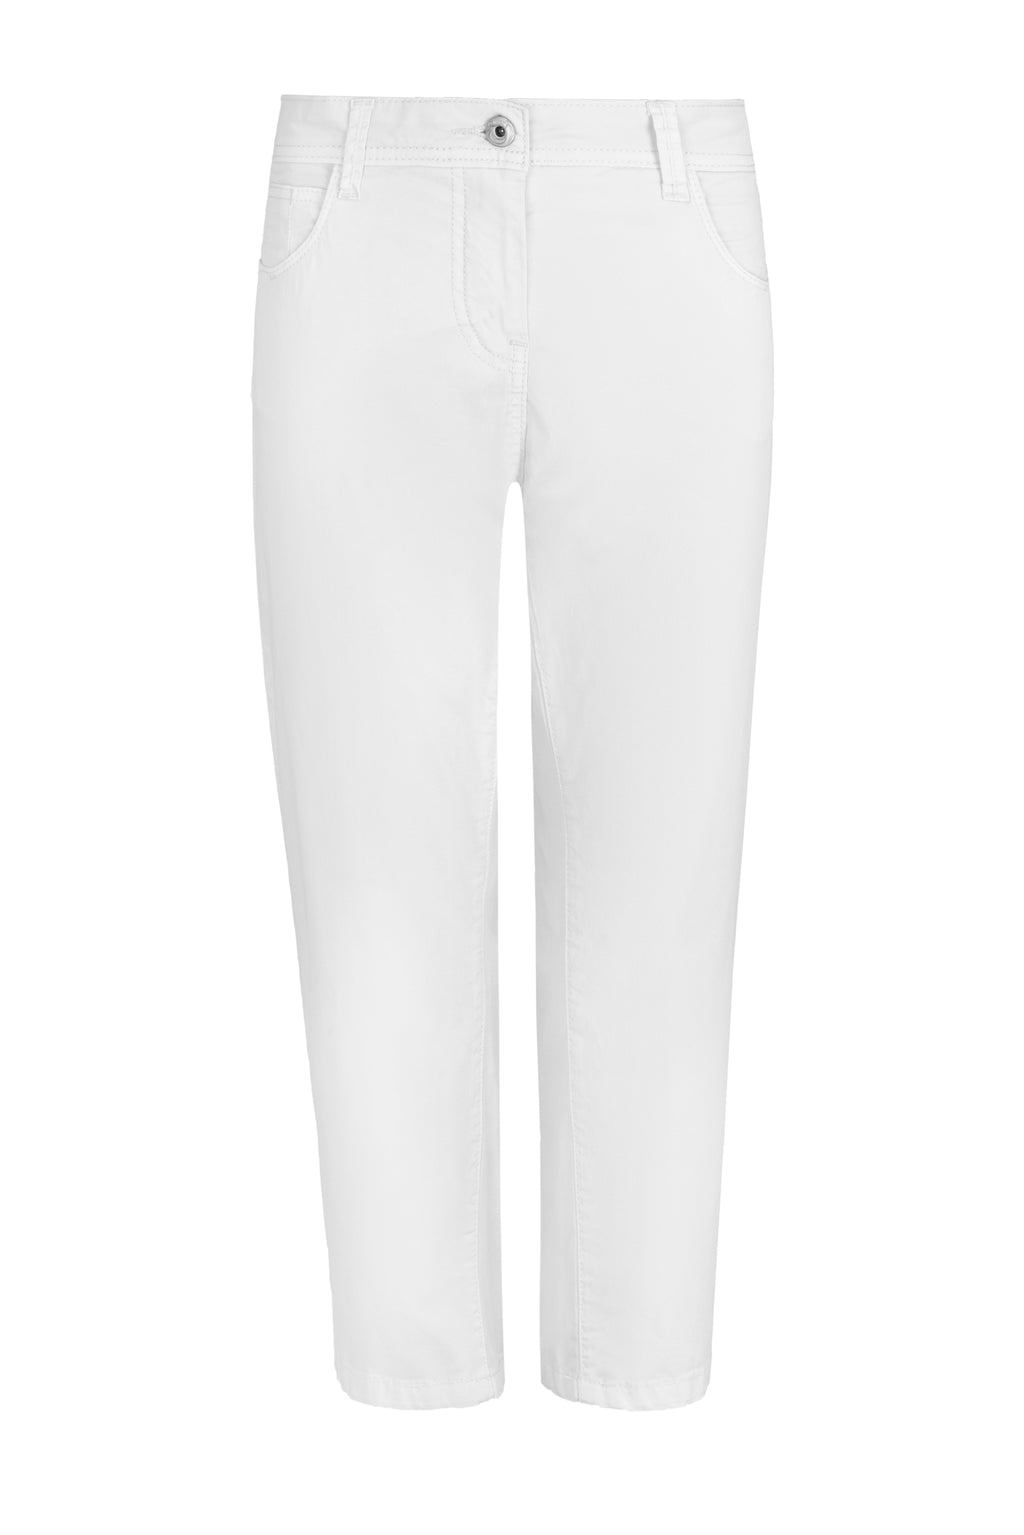 Damen Hose Victoria Capri Light Cotton